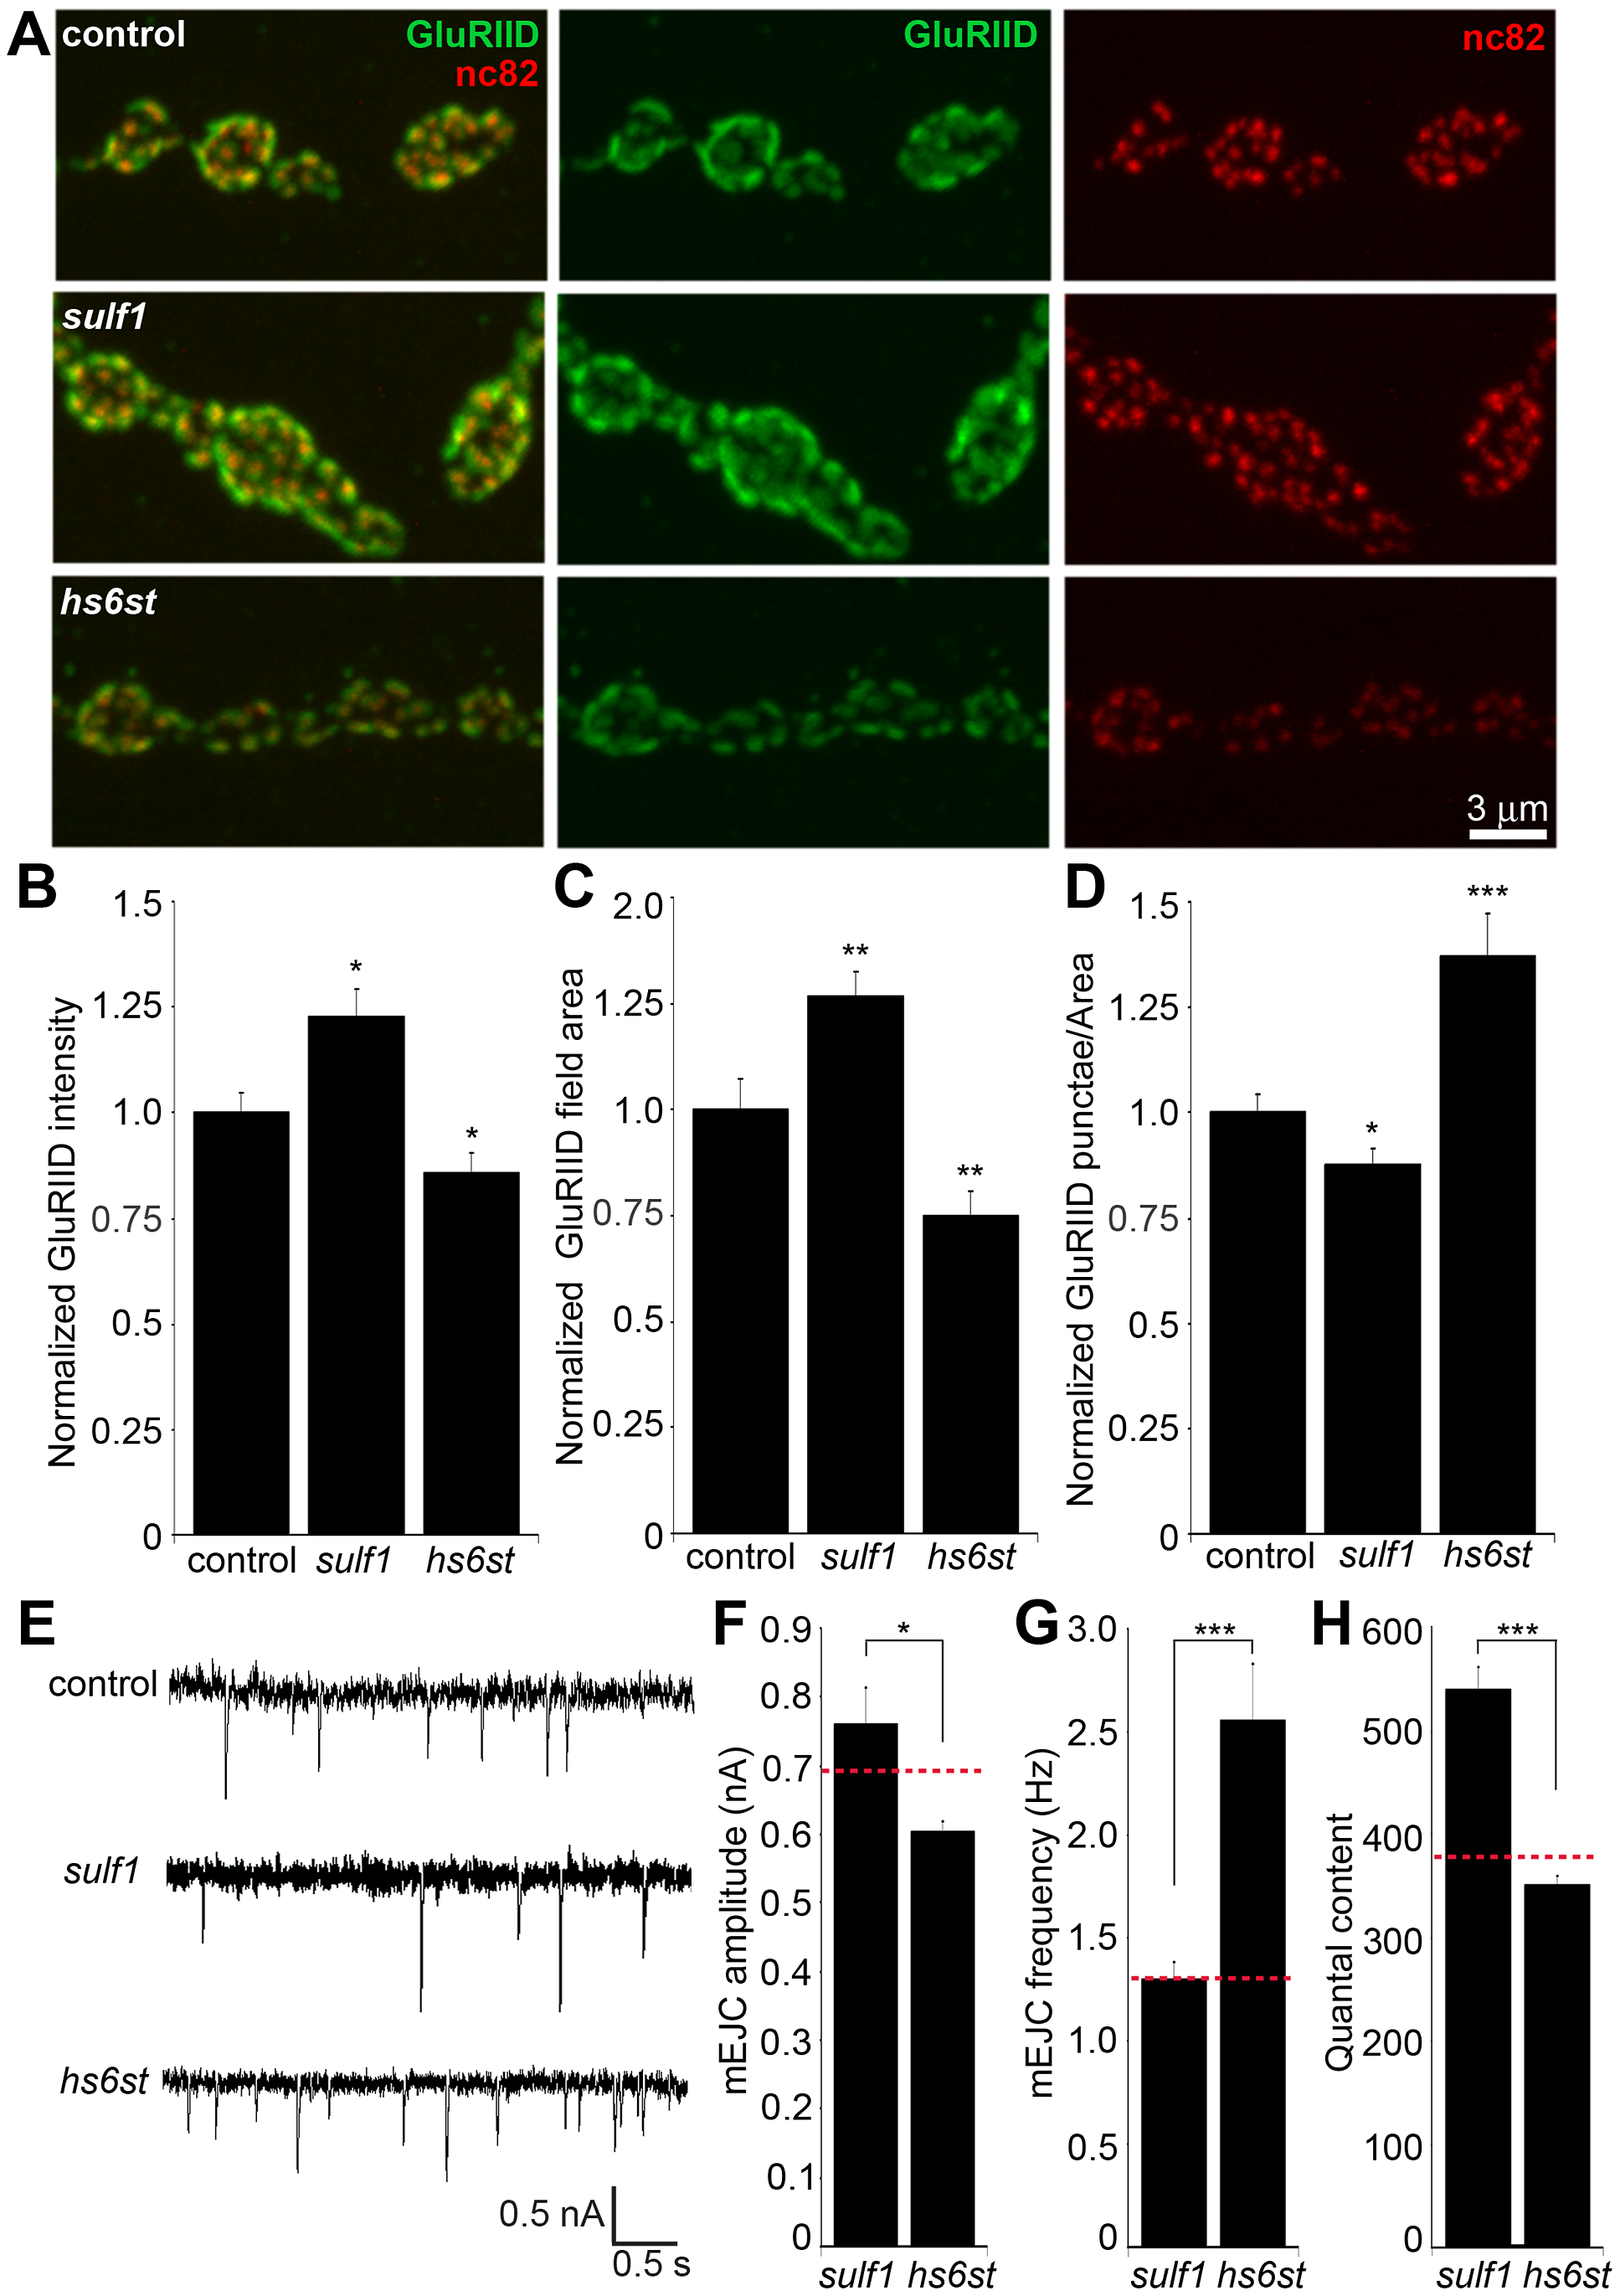 Bi-directional effects of <i>sulf1</i> and <i>hs6st</i> nulls on synaptic assembly.